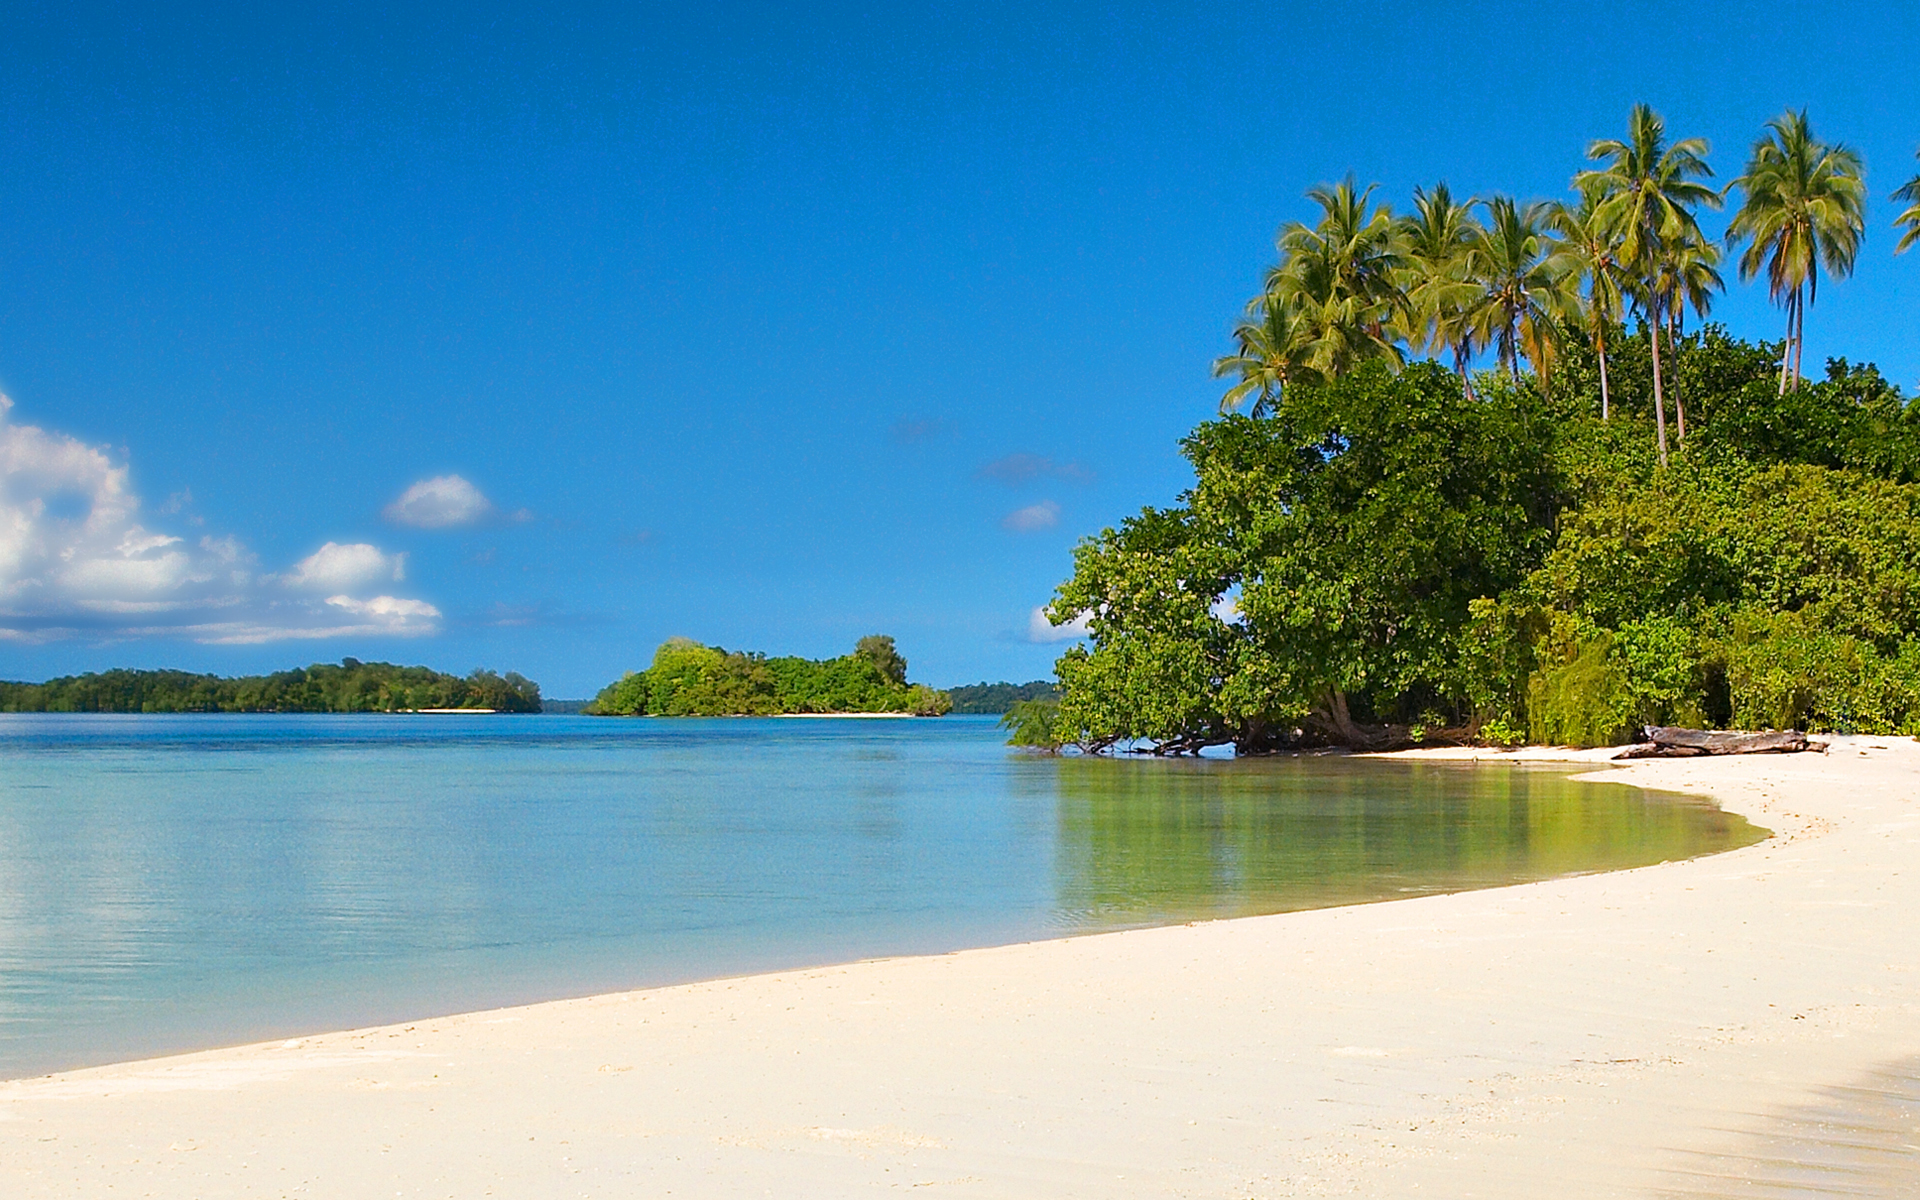 download beautiful beach wallpaper which is under the beach wallpapers 1920x1200